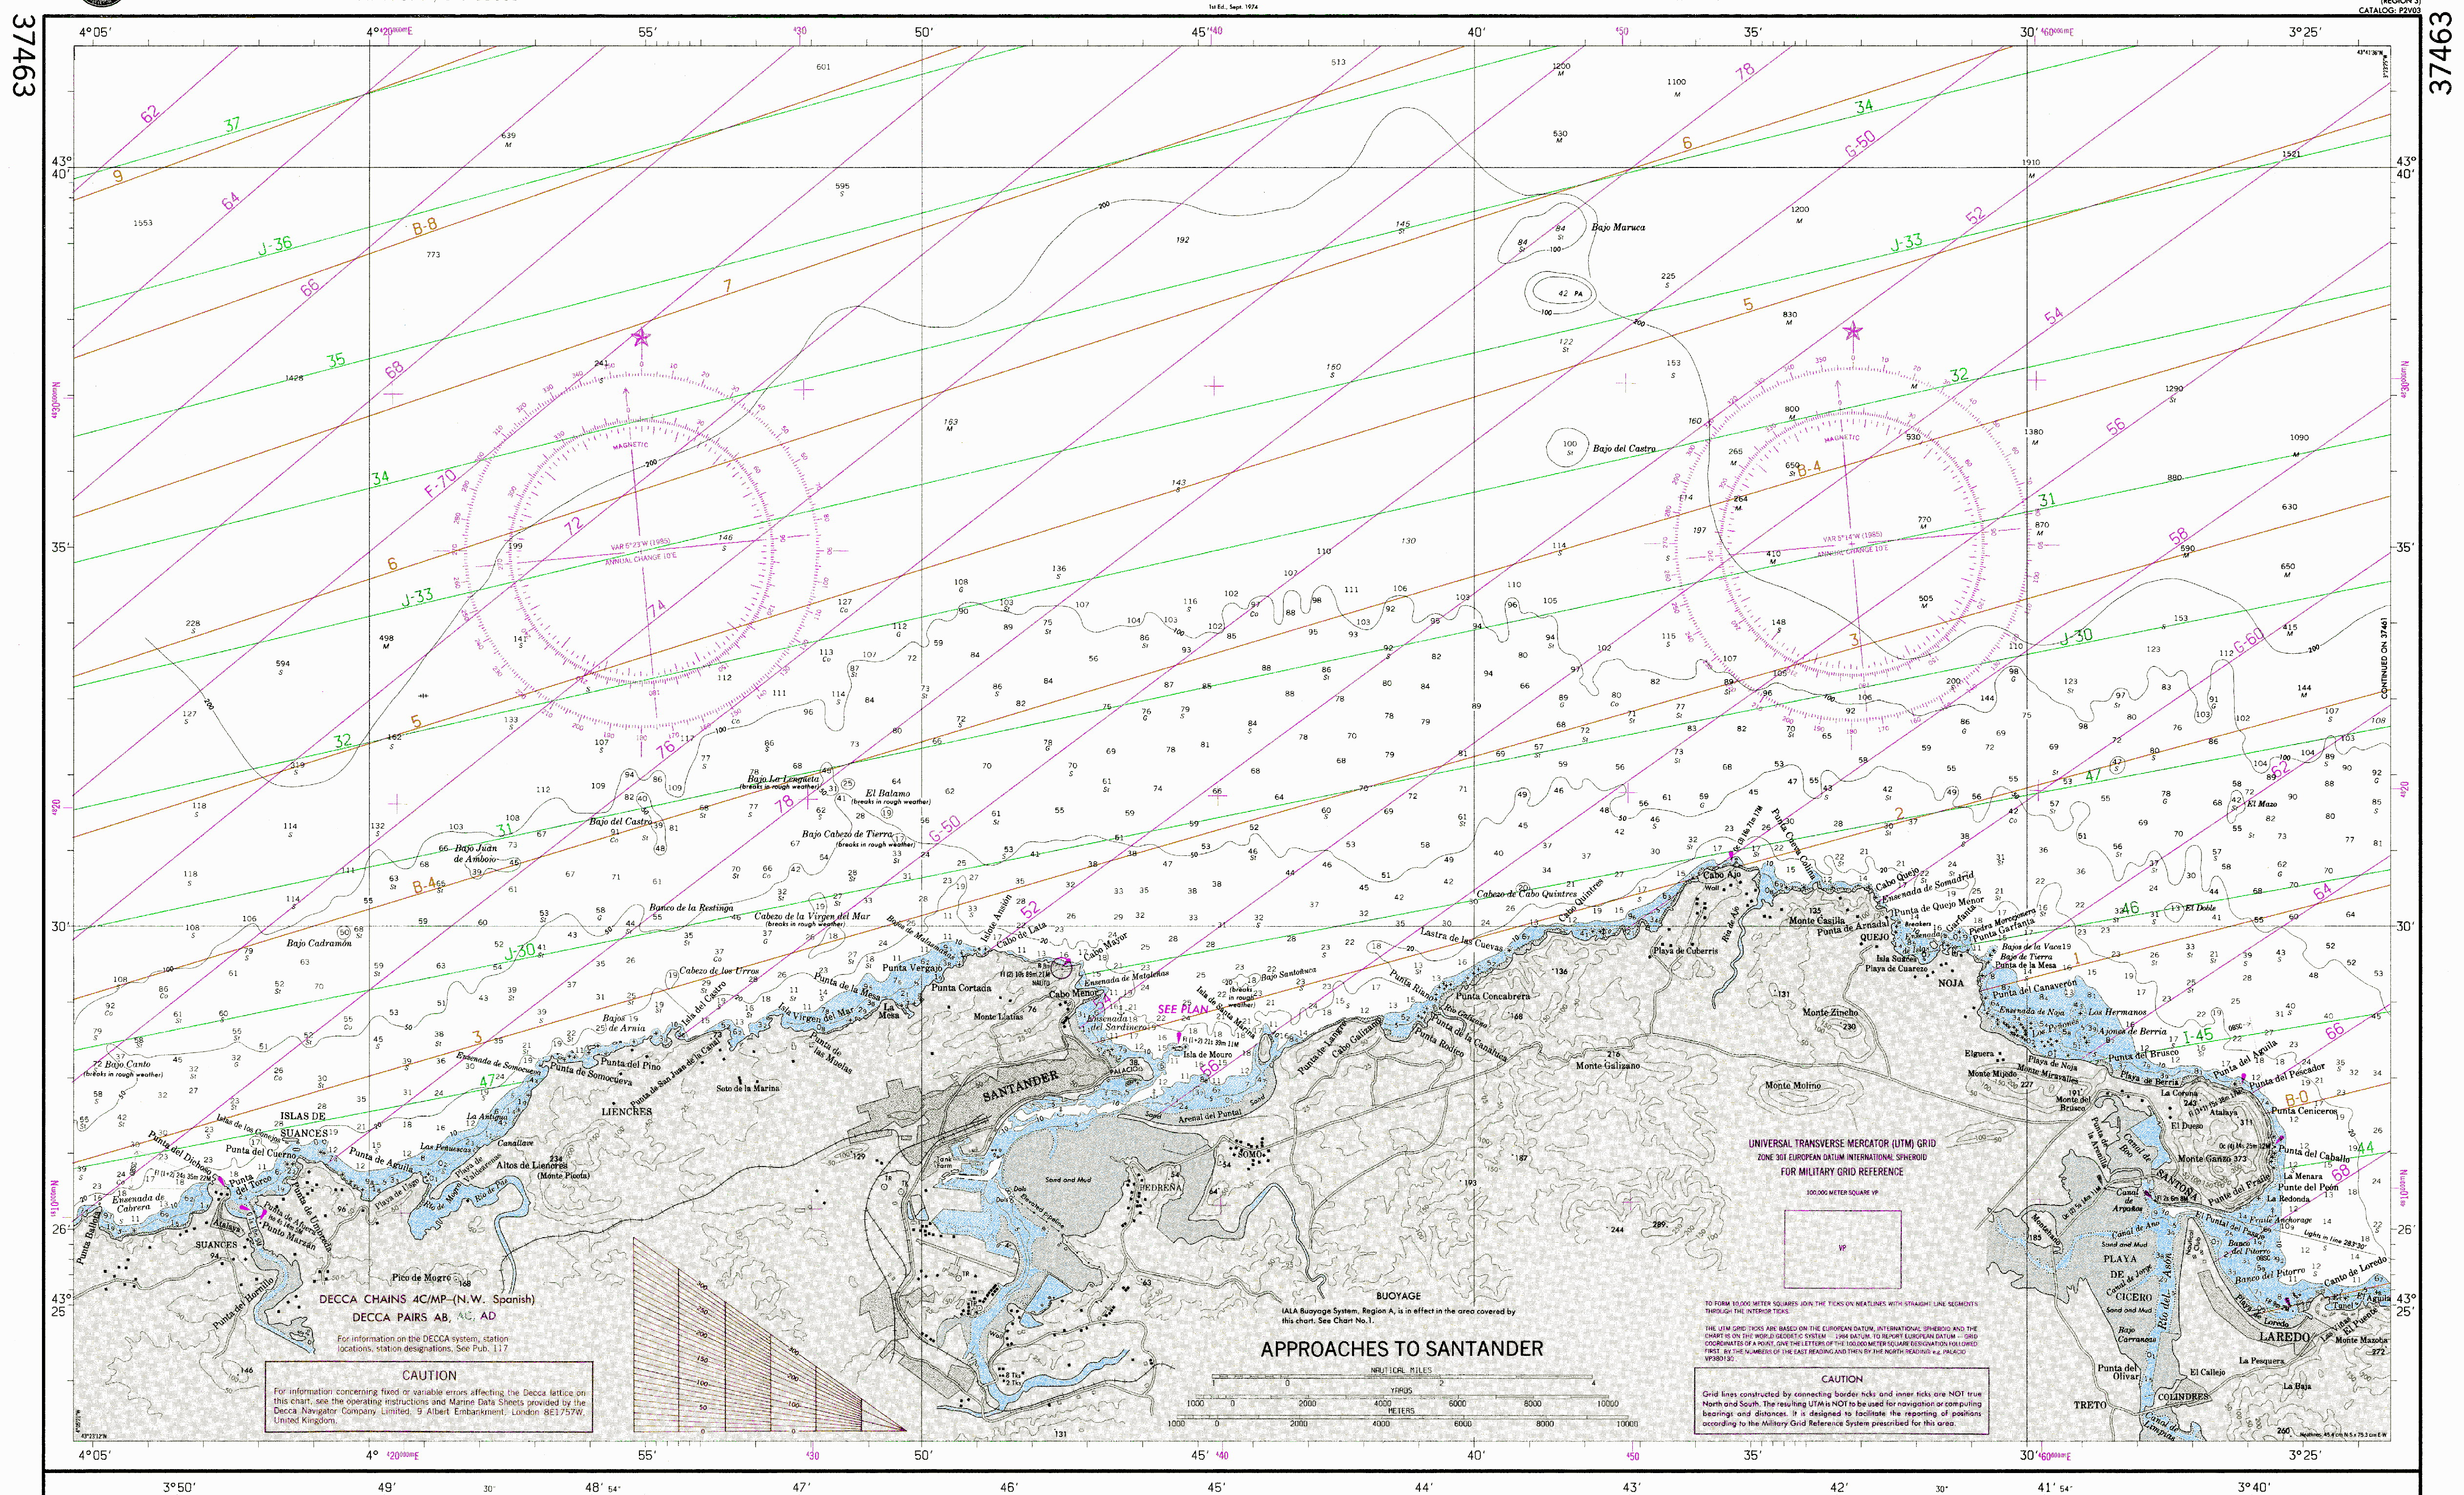 Nautical chart of the approaches to Santander